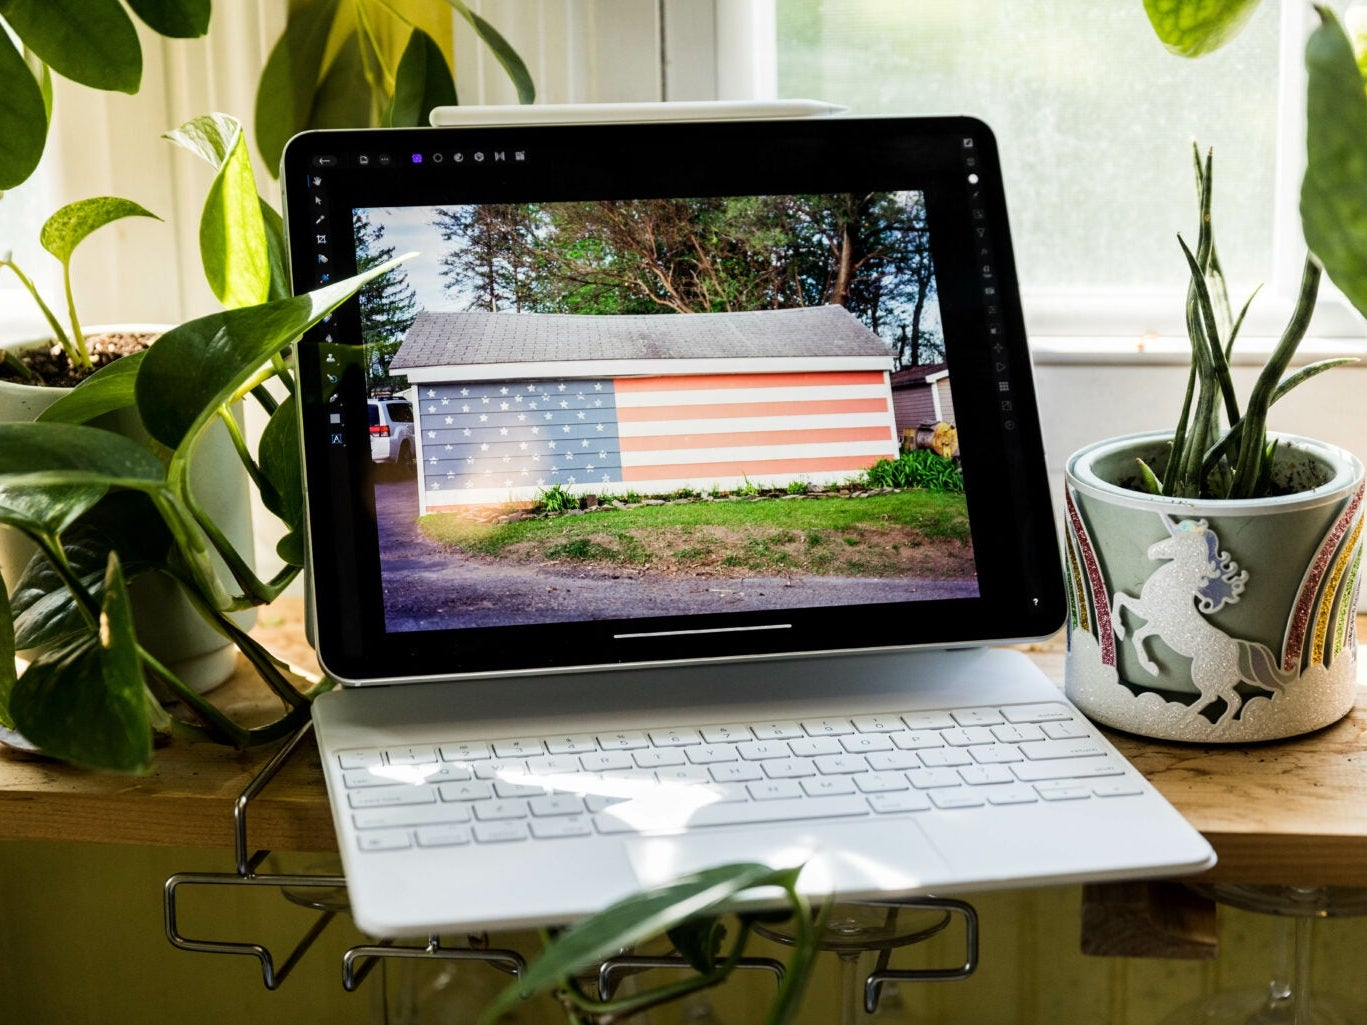 An iPad Pro with a keyboard, on a windowsill surrounded by plants and bathed in sunlight.